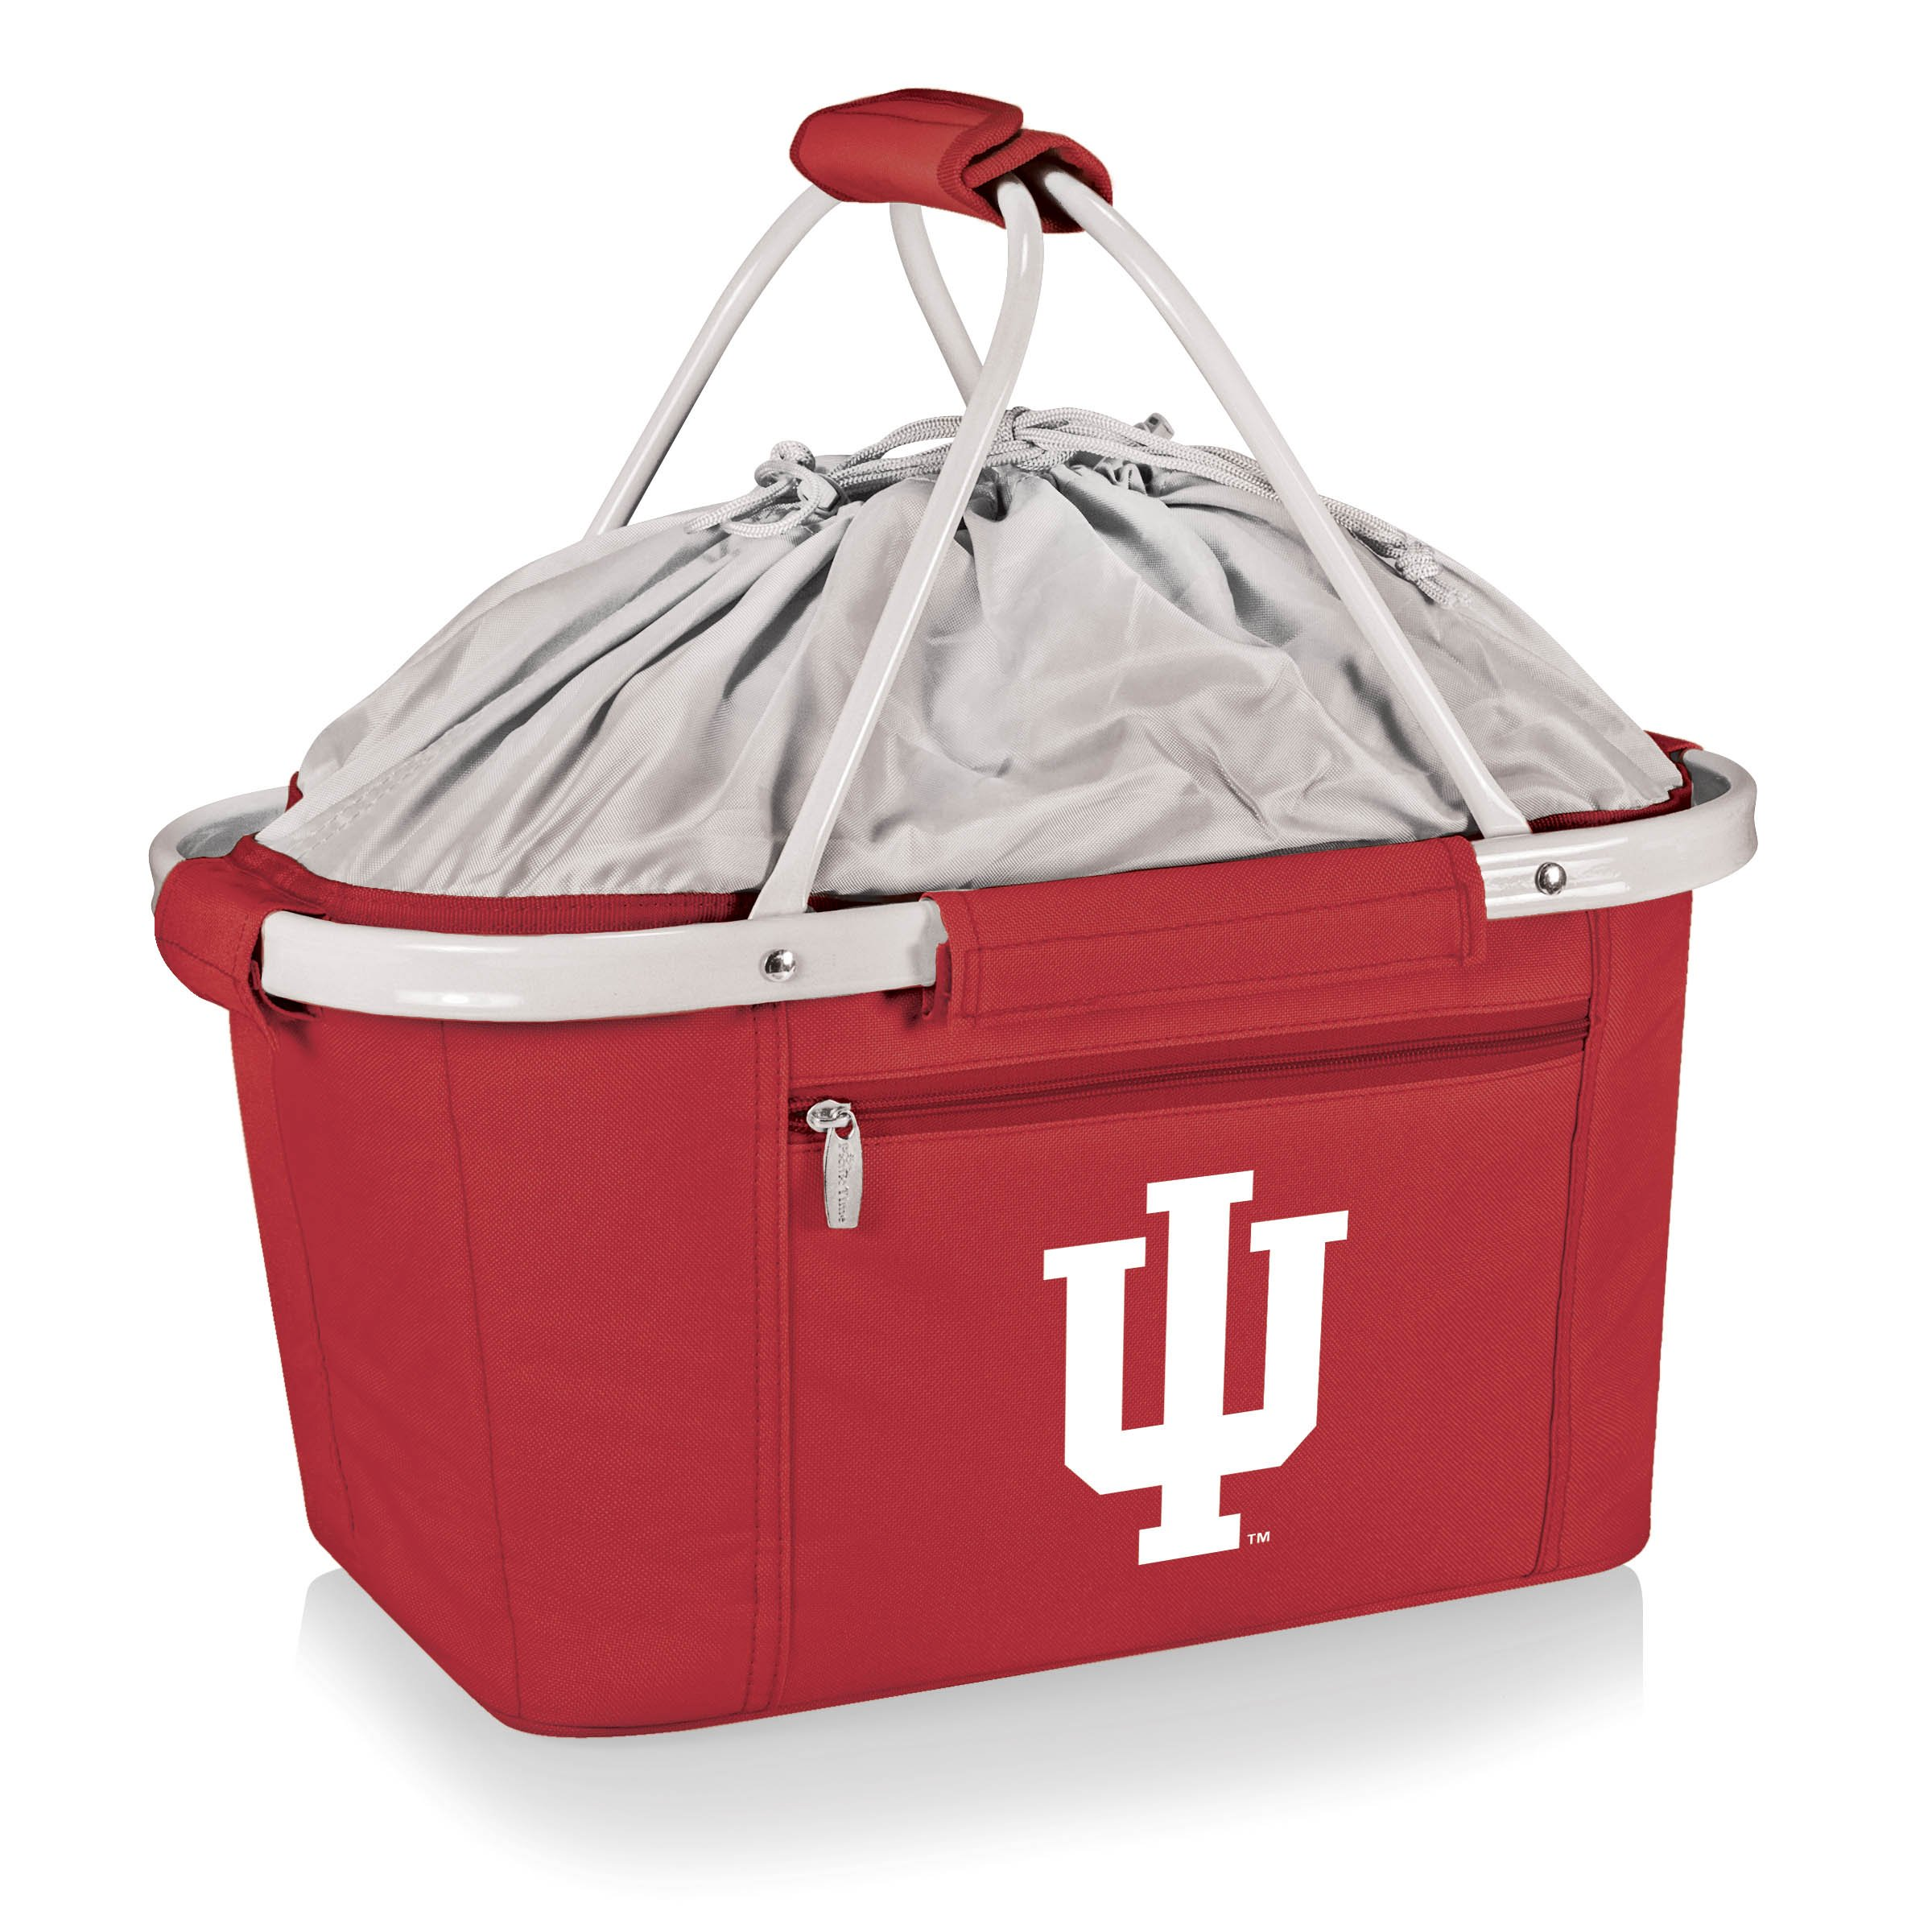 PICNIC TIME 645-00-100-674-0 Indiana University Hoosiers Tailgating Tote Bag Picnic Basket